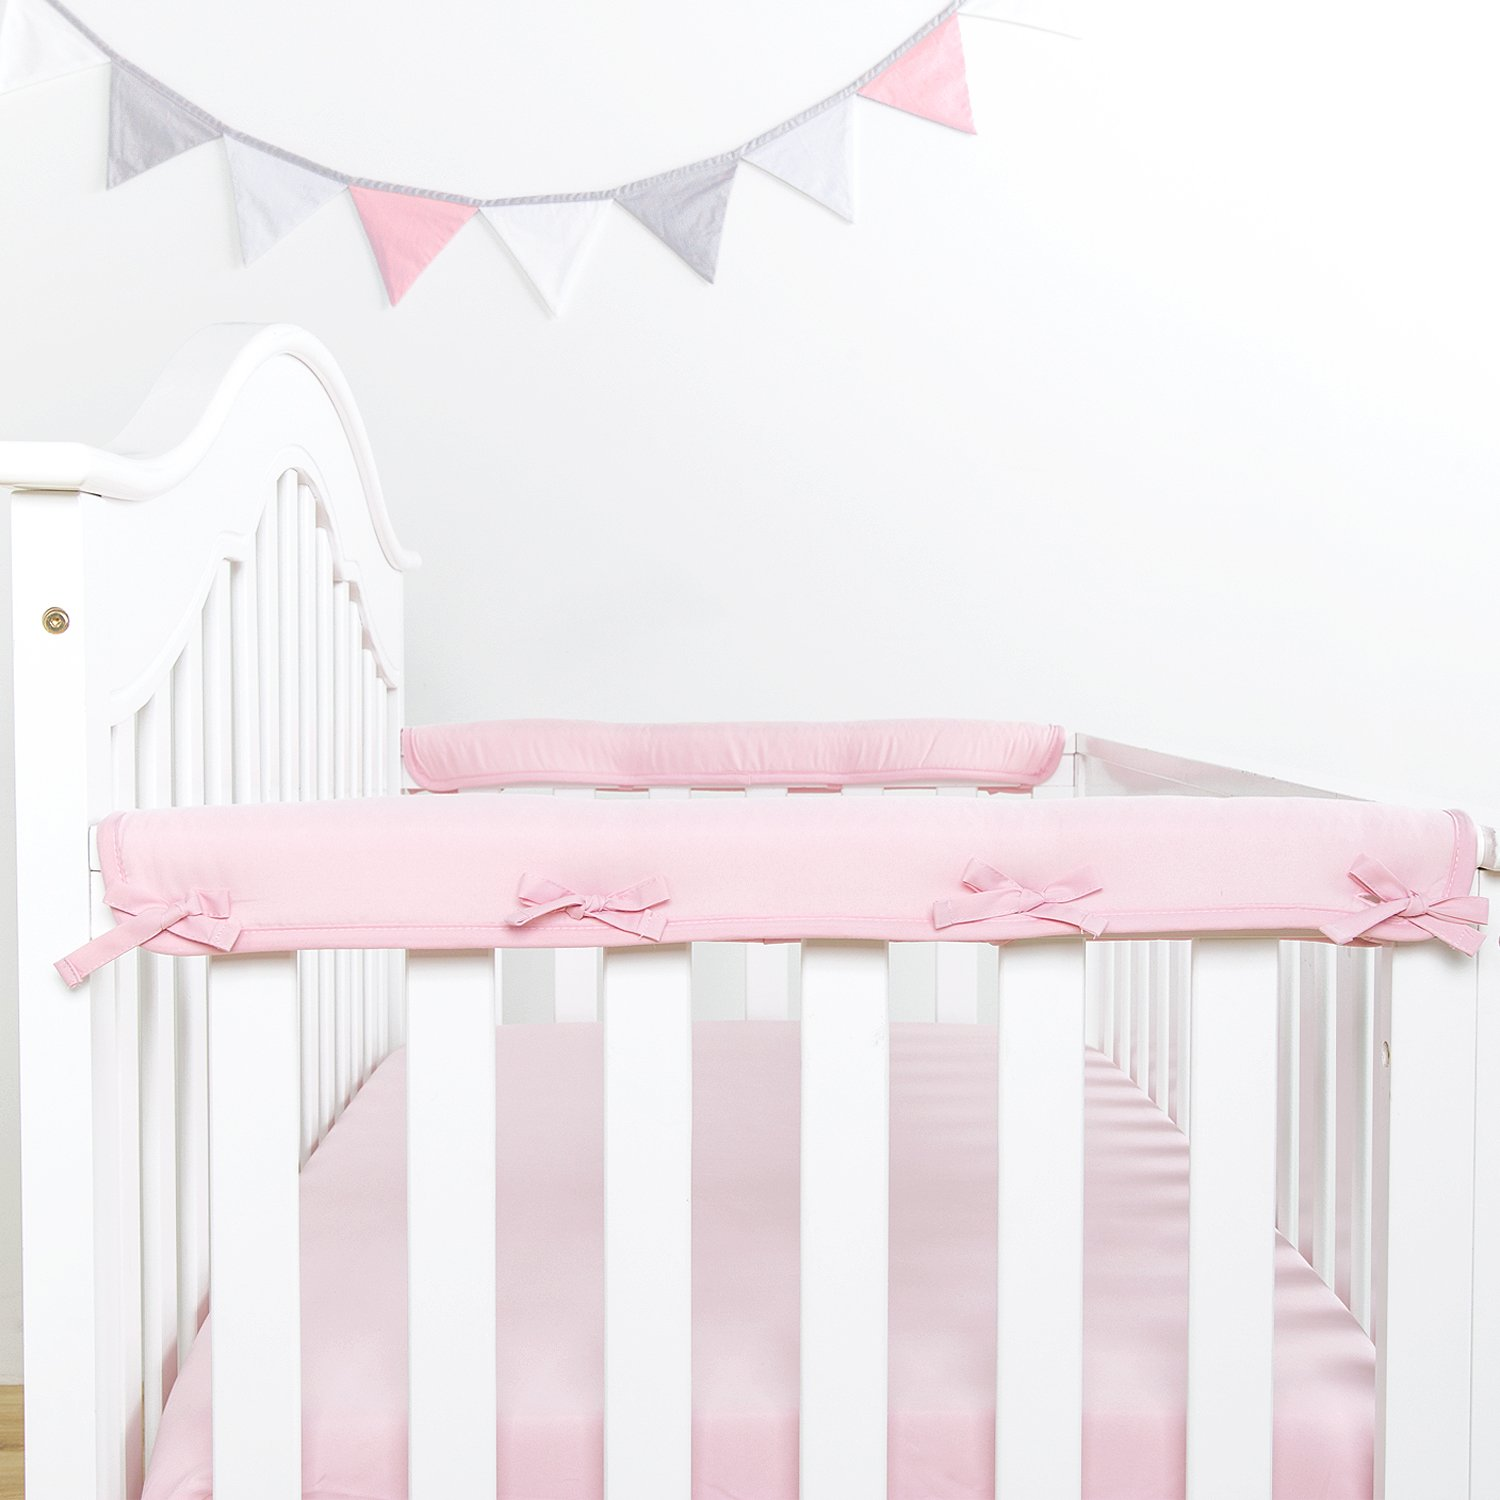 """TILLYOU 2-Pack Padded Baby Crib Rail Cover Protector Safe Teething Guard Wrap for Narrow Side Crib Rails(Measuring Up to 8"""" Around), 100% Silky Soft Microfiber Polyester, Reversible, Lt Pink/White"""